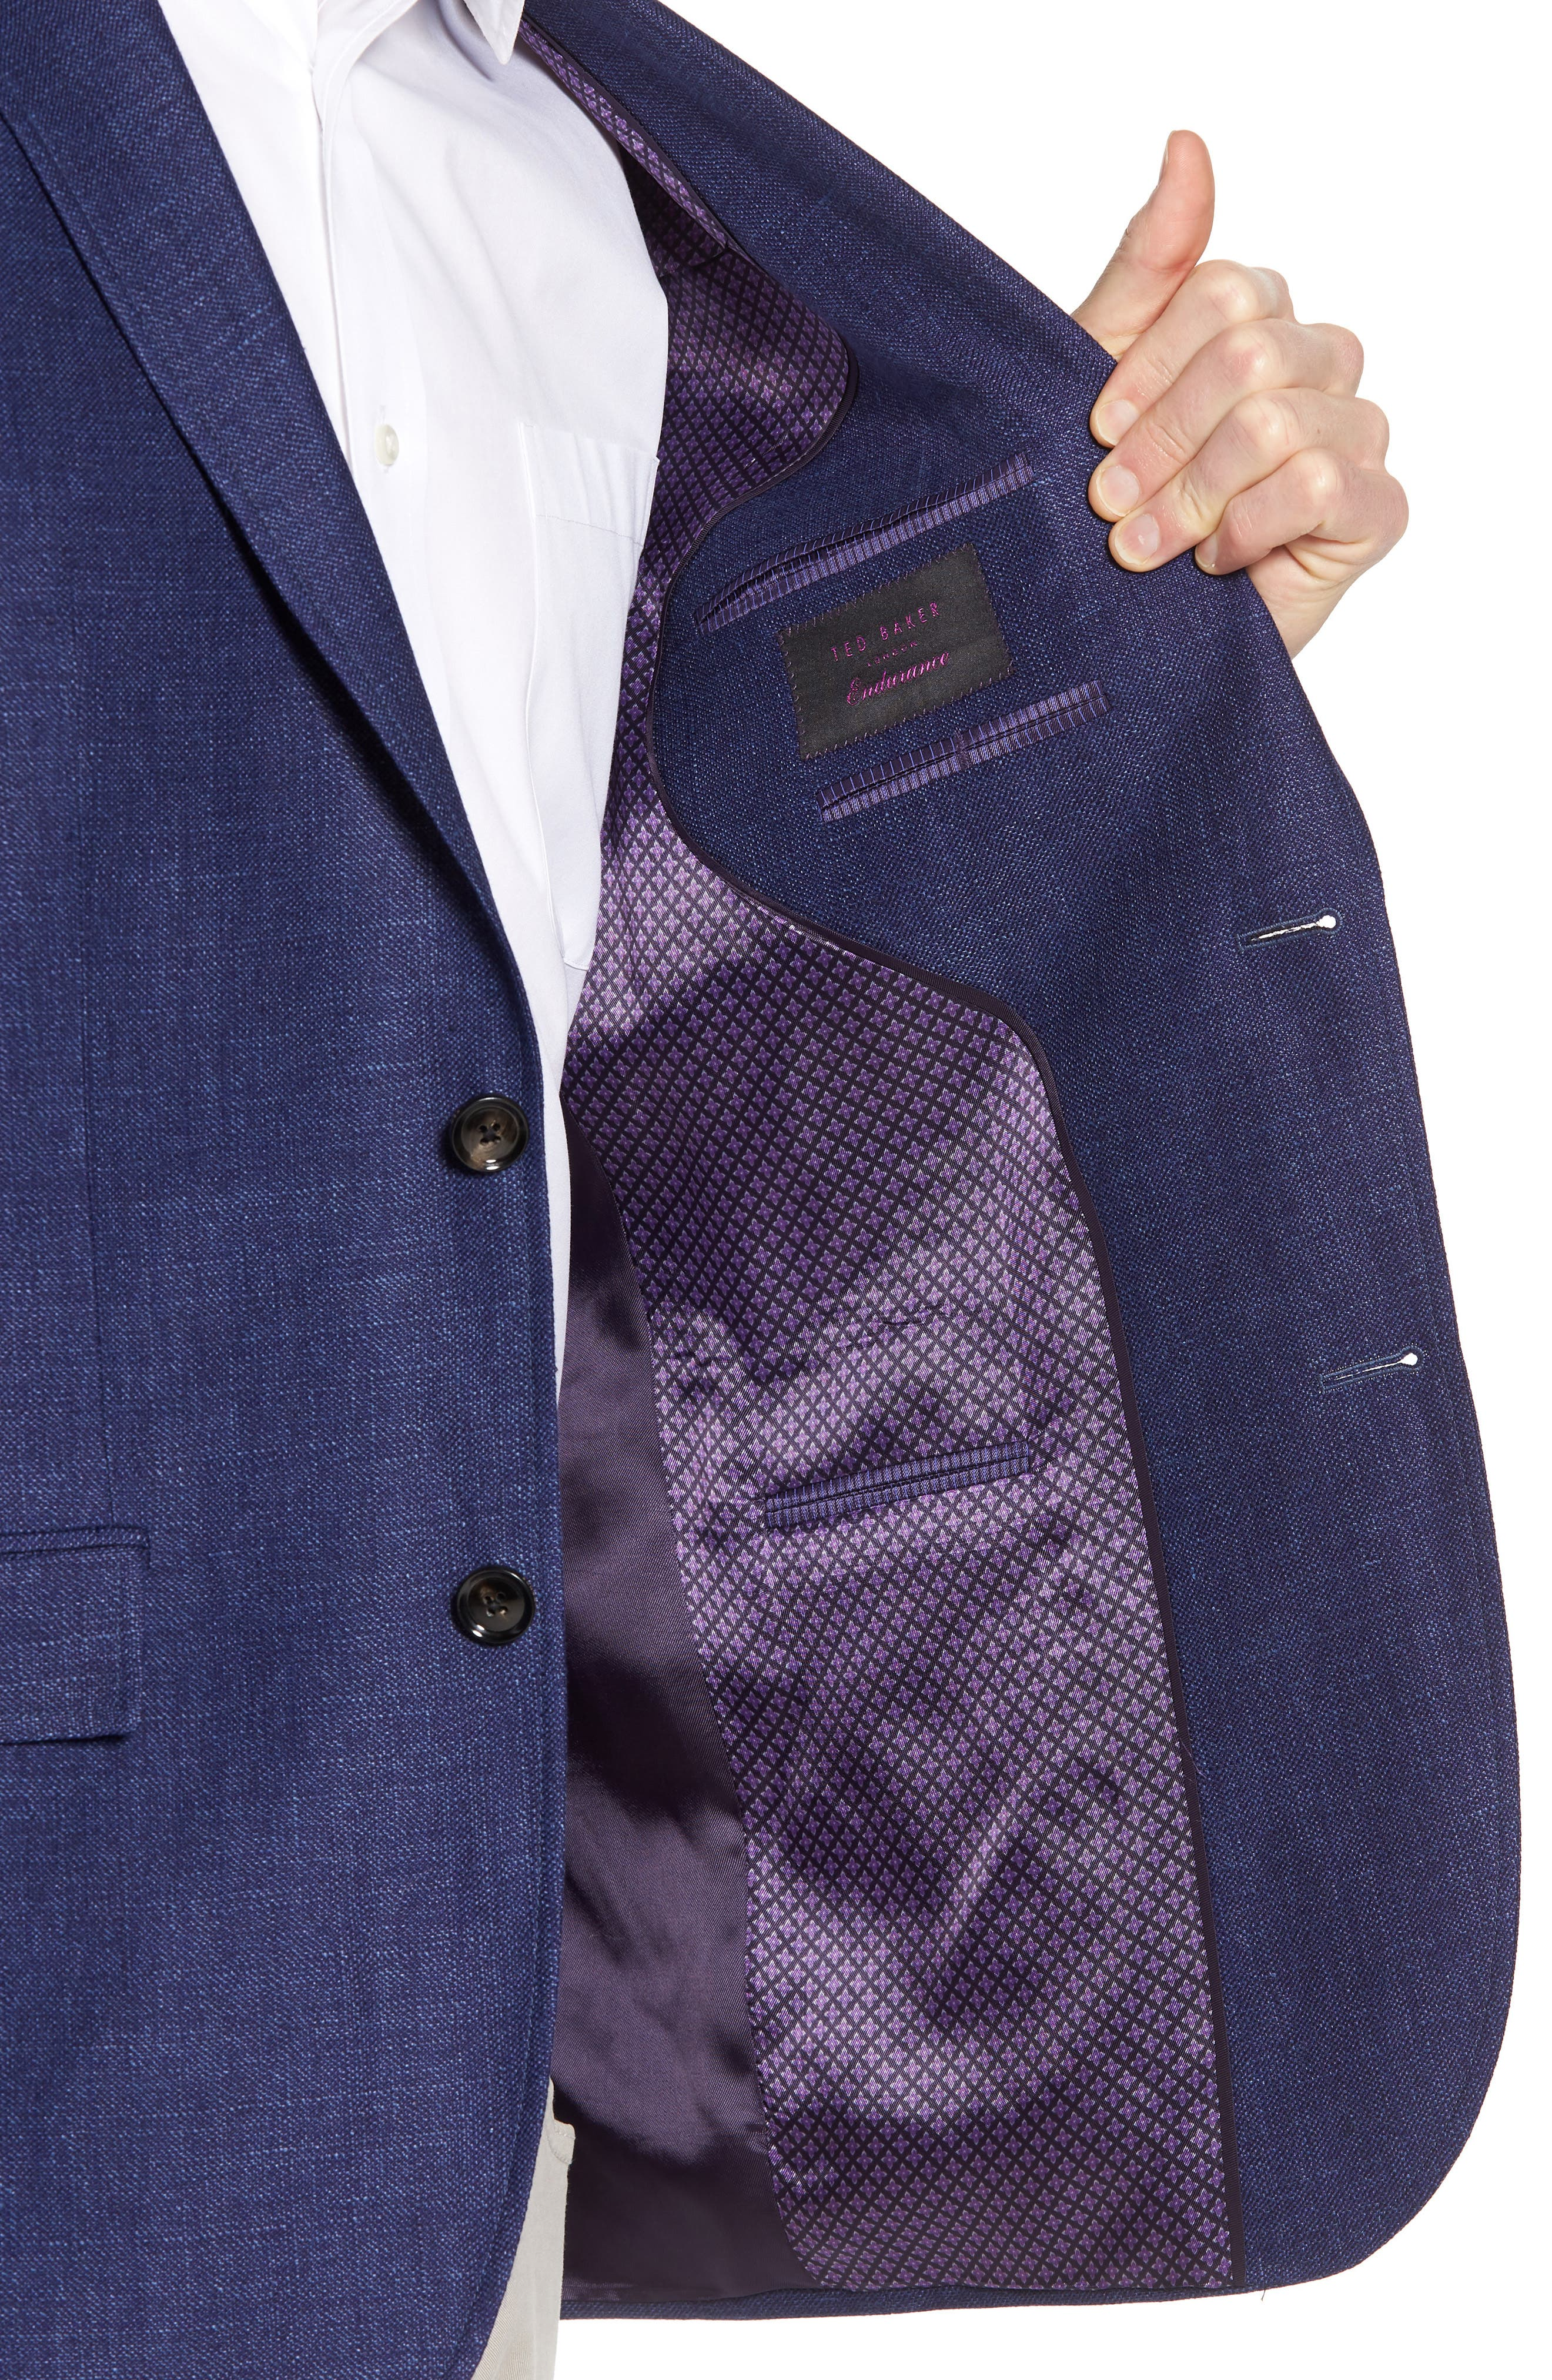 Jay Trim Fit Linen & Wool Blazer,                             Alternate thumbnail 4, color,